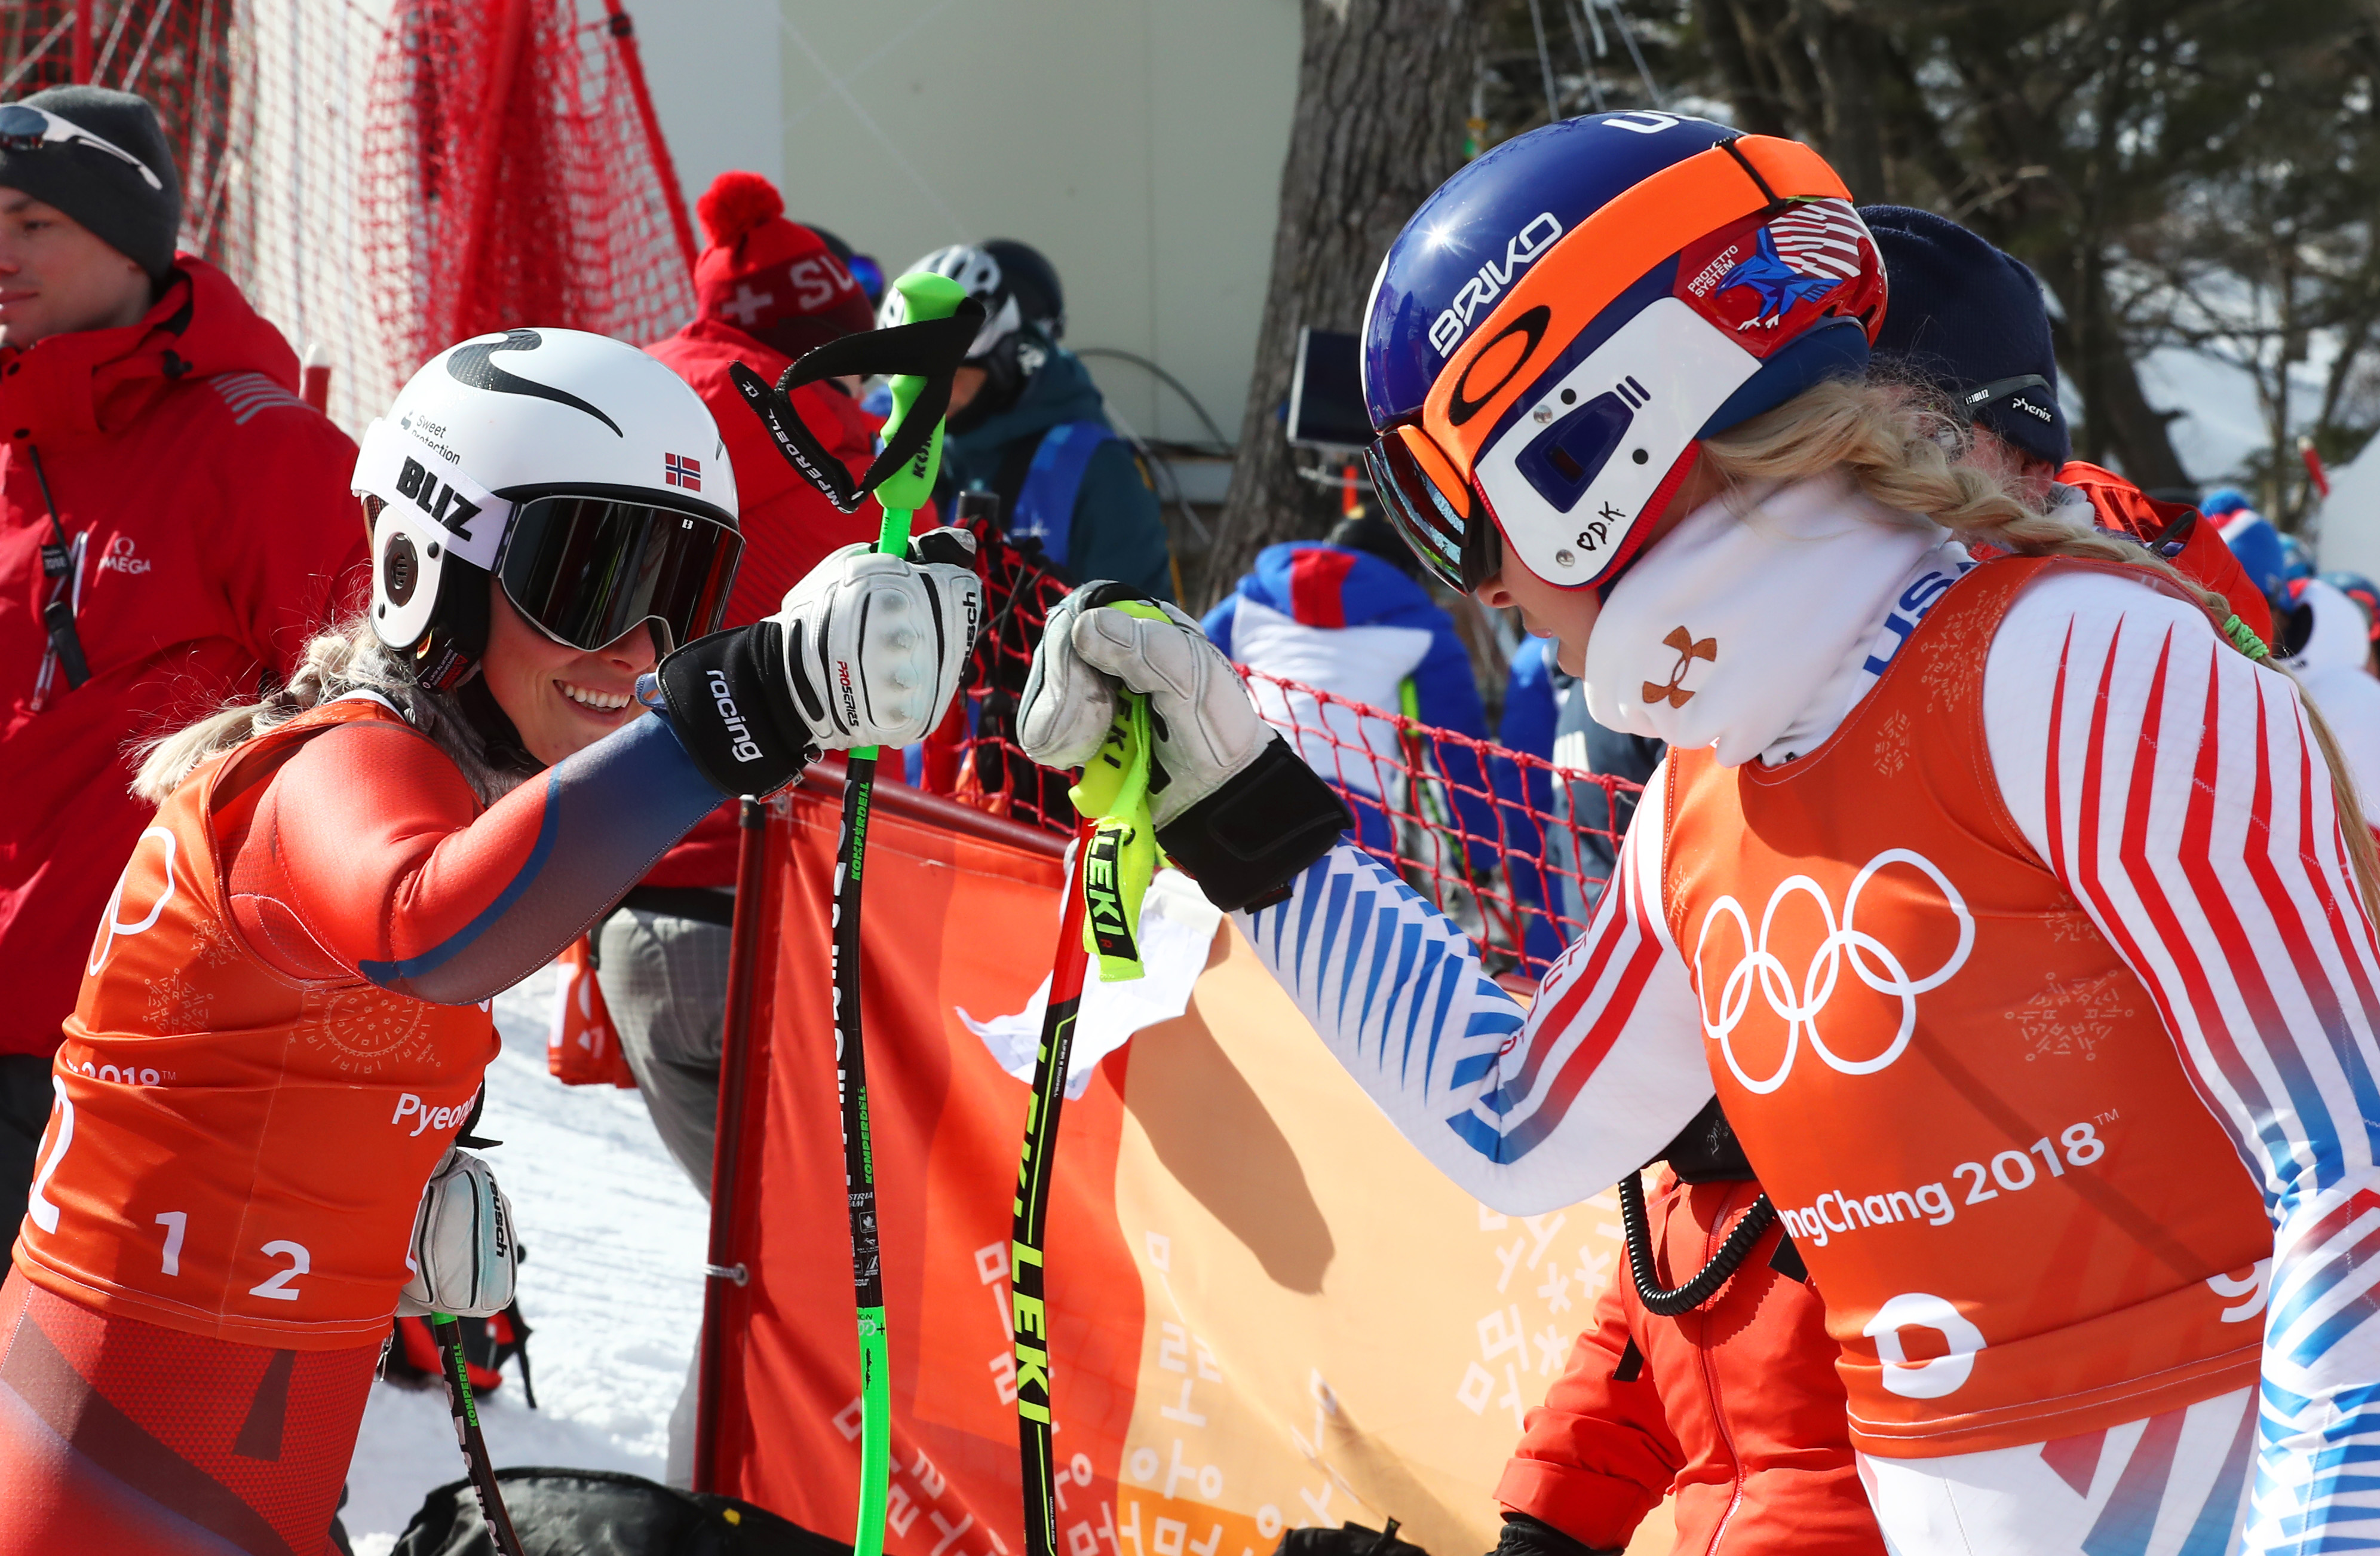 Lindsey Vonn and Ragnhild Mowinckel of Norway fist bump after the third training downhill training run Tuesday at Jeongseon Alpine Centre. (Getty Images - Alexander Hassenstein)